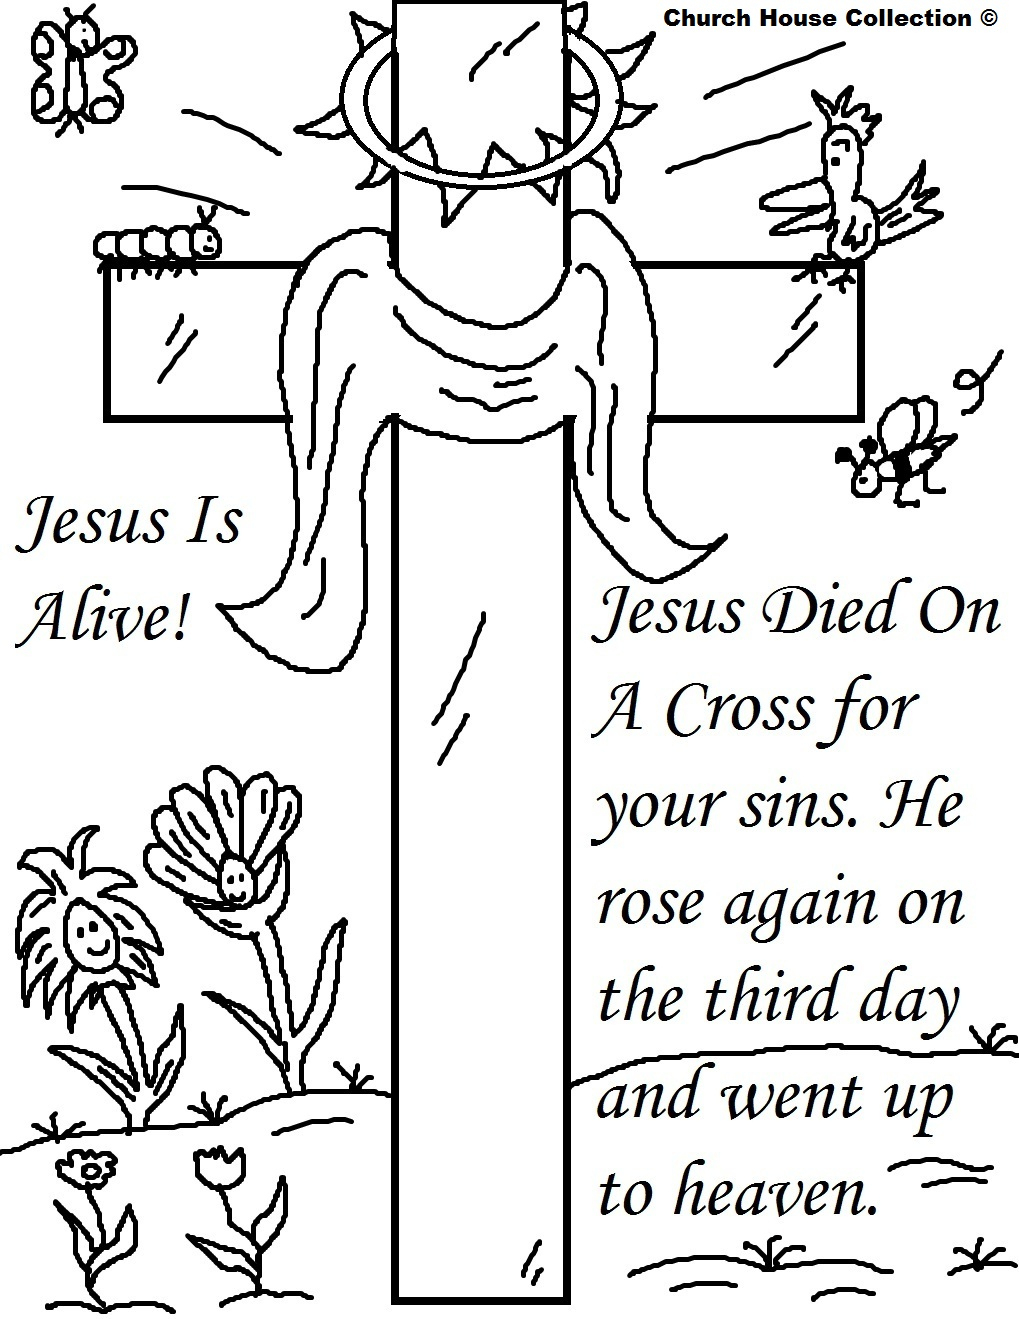 25 Religious Easter Coloring Pages   Free Easter Activity Printables - Free Easter Color Pages Printable